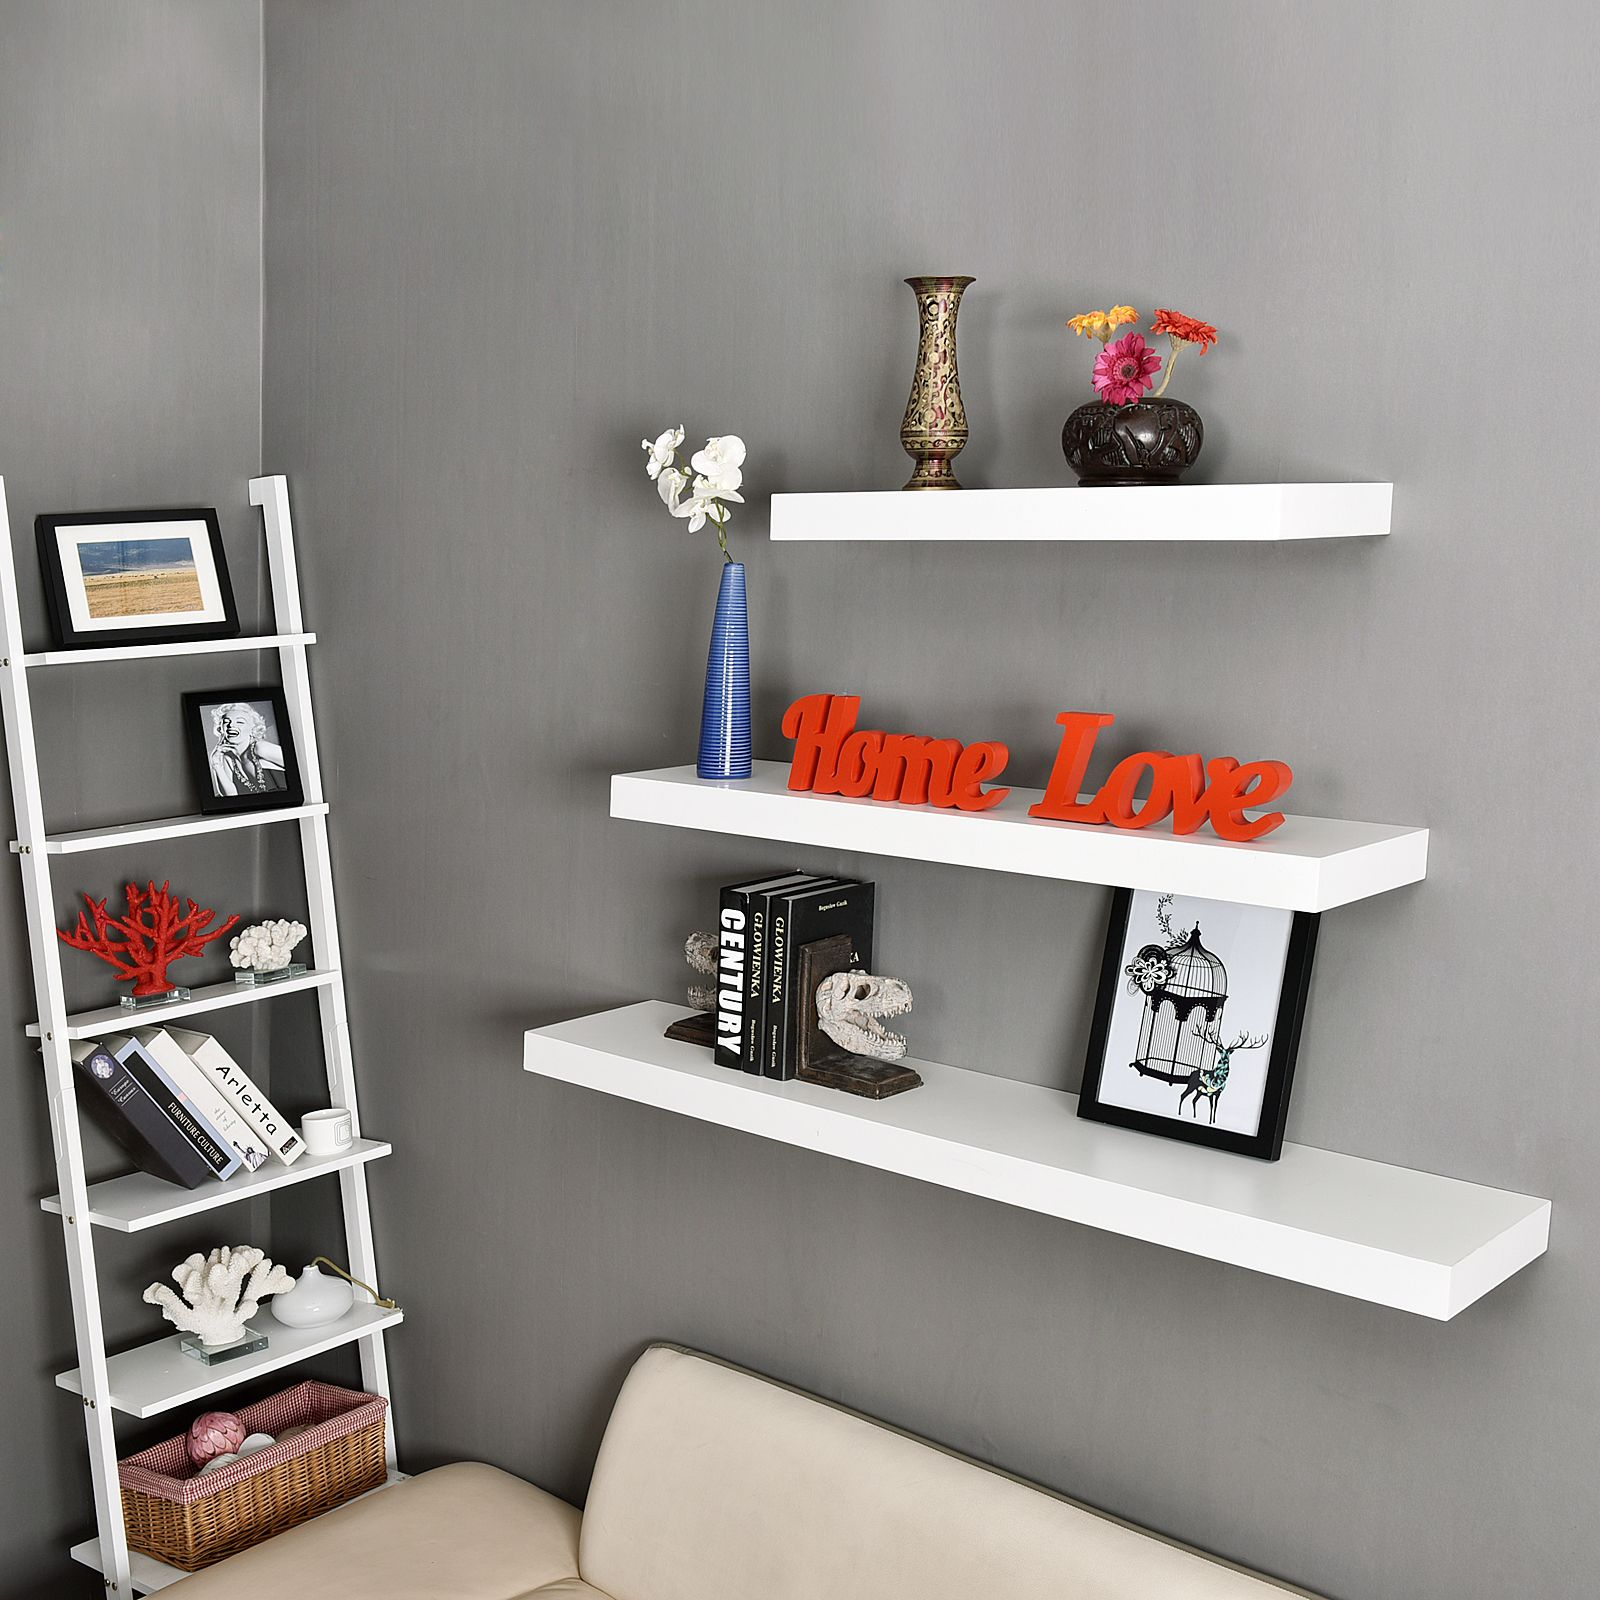 Welland 24 Inch Mission Floating Wall Shelf Off White Shelves Floating Shelves Floating Wall Shelves